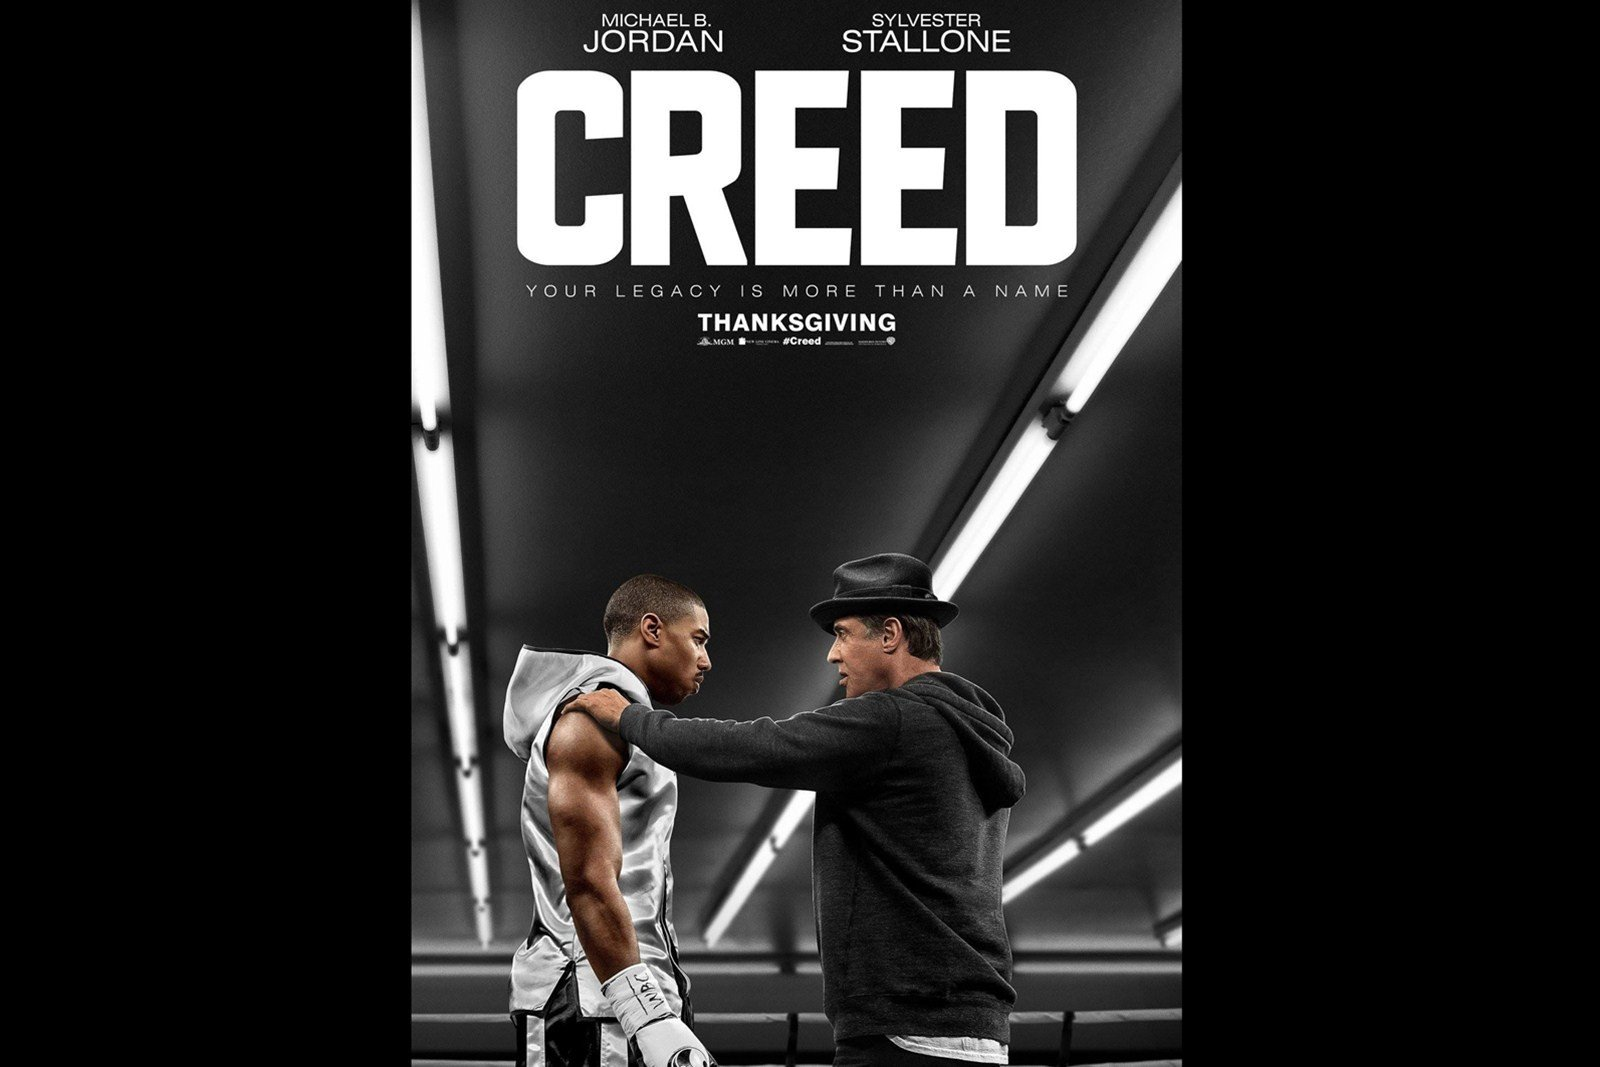 Creed Movie Wallpapers Top 48 Creed Movie Backgrounds 1600x1067